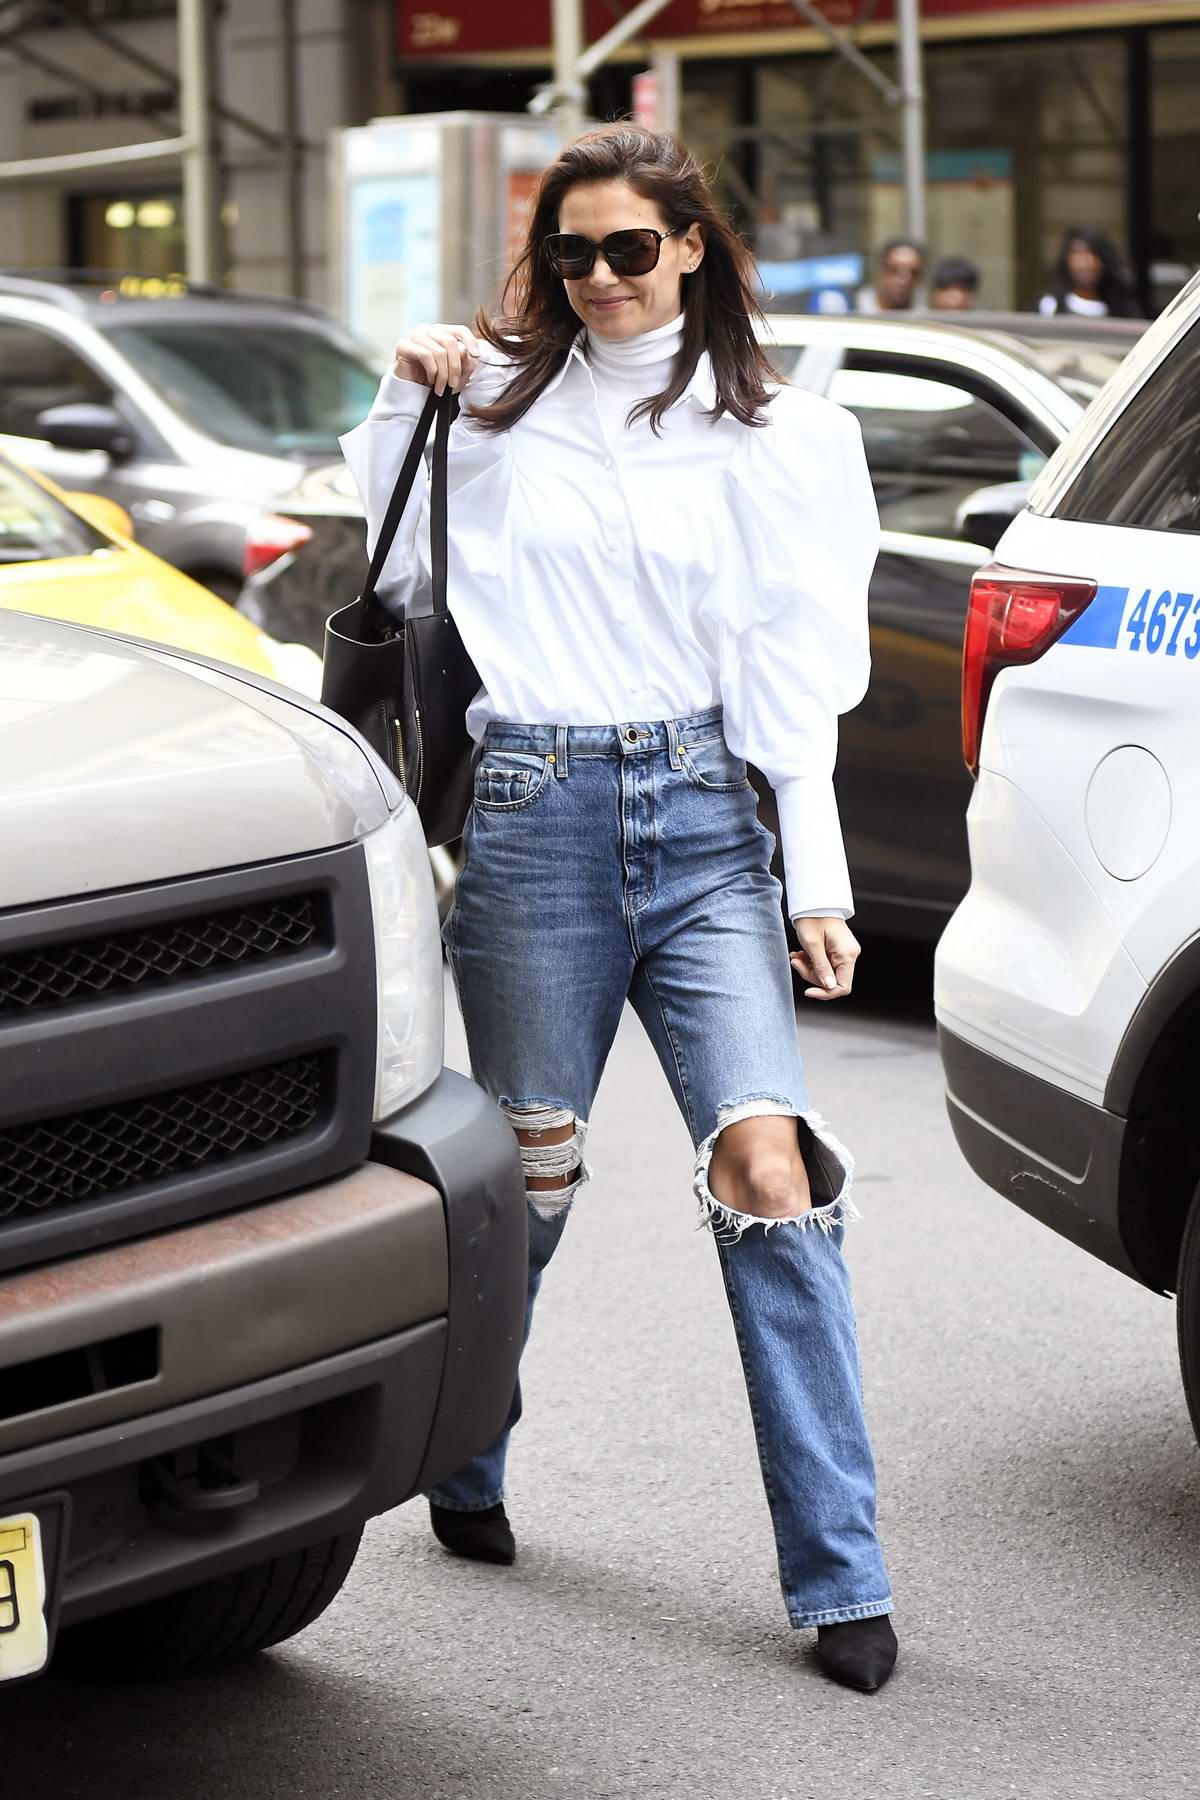 Katie Holmes wears a puffy white shirt and ripped as she steps out for a business meeting in New York City